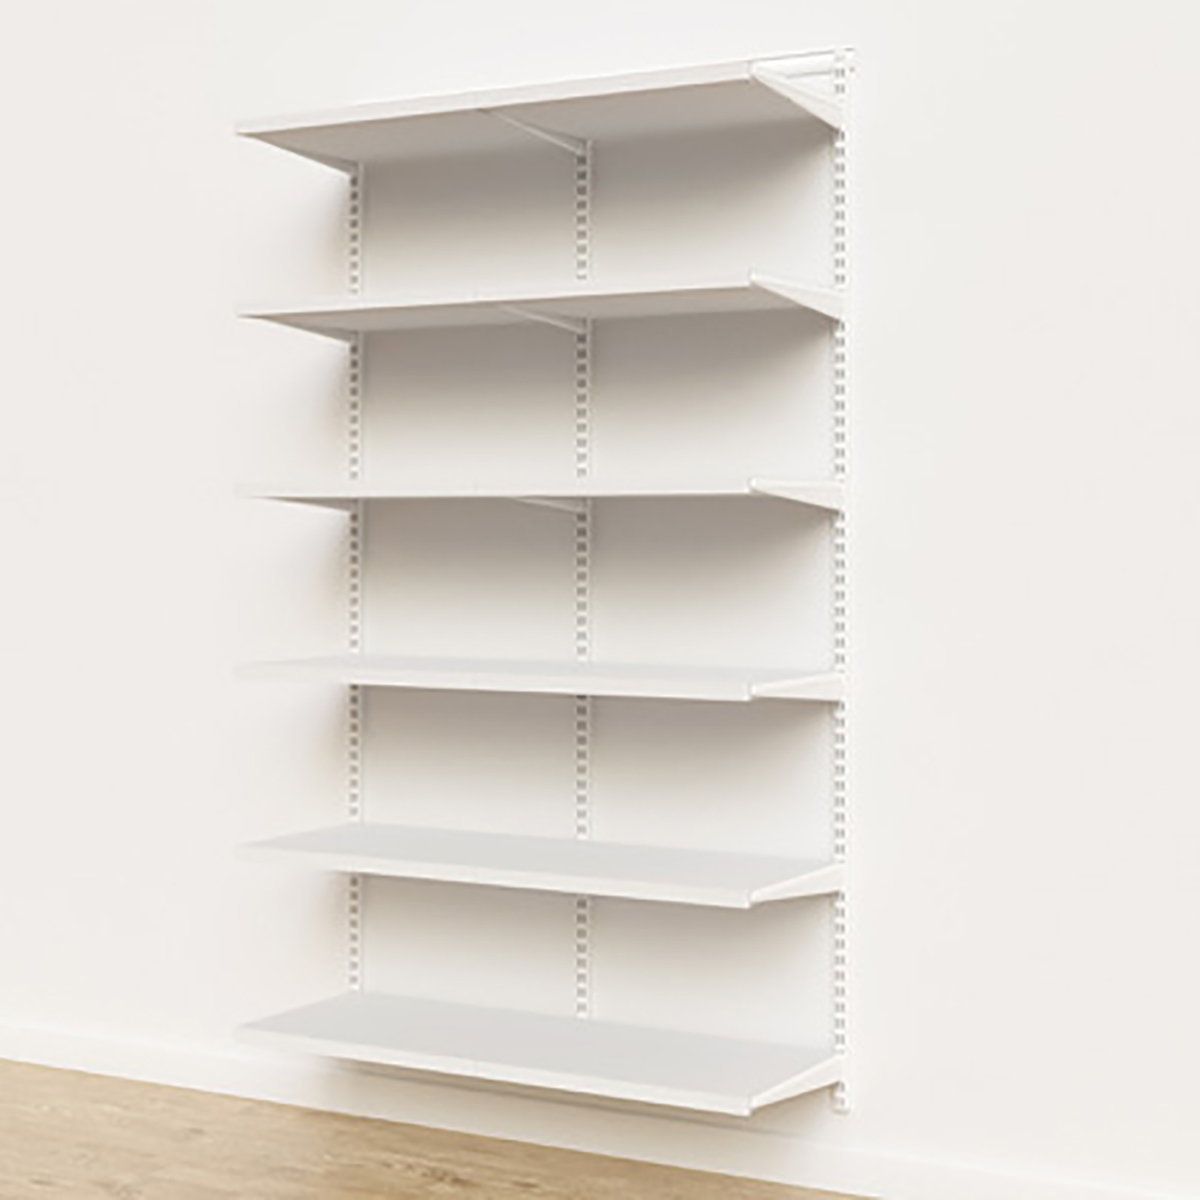 Elfa Décor 4' White Basic Shelving Units for Anywhere